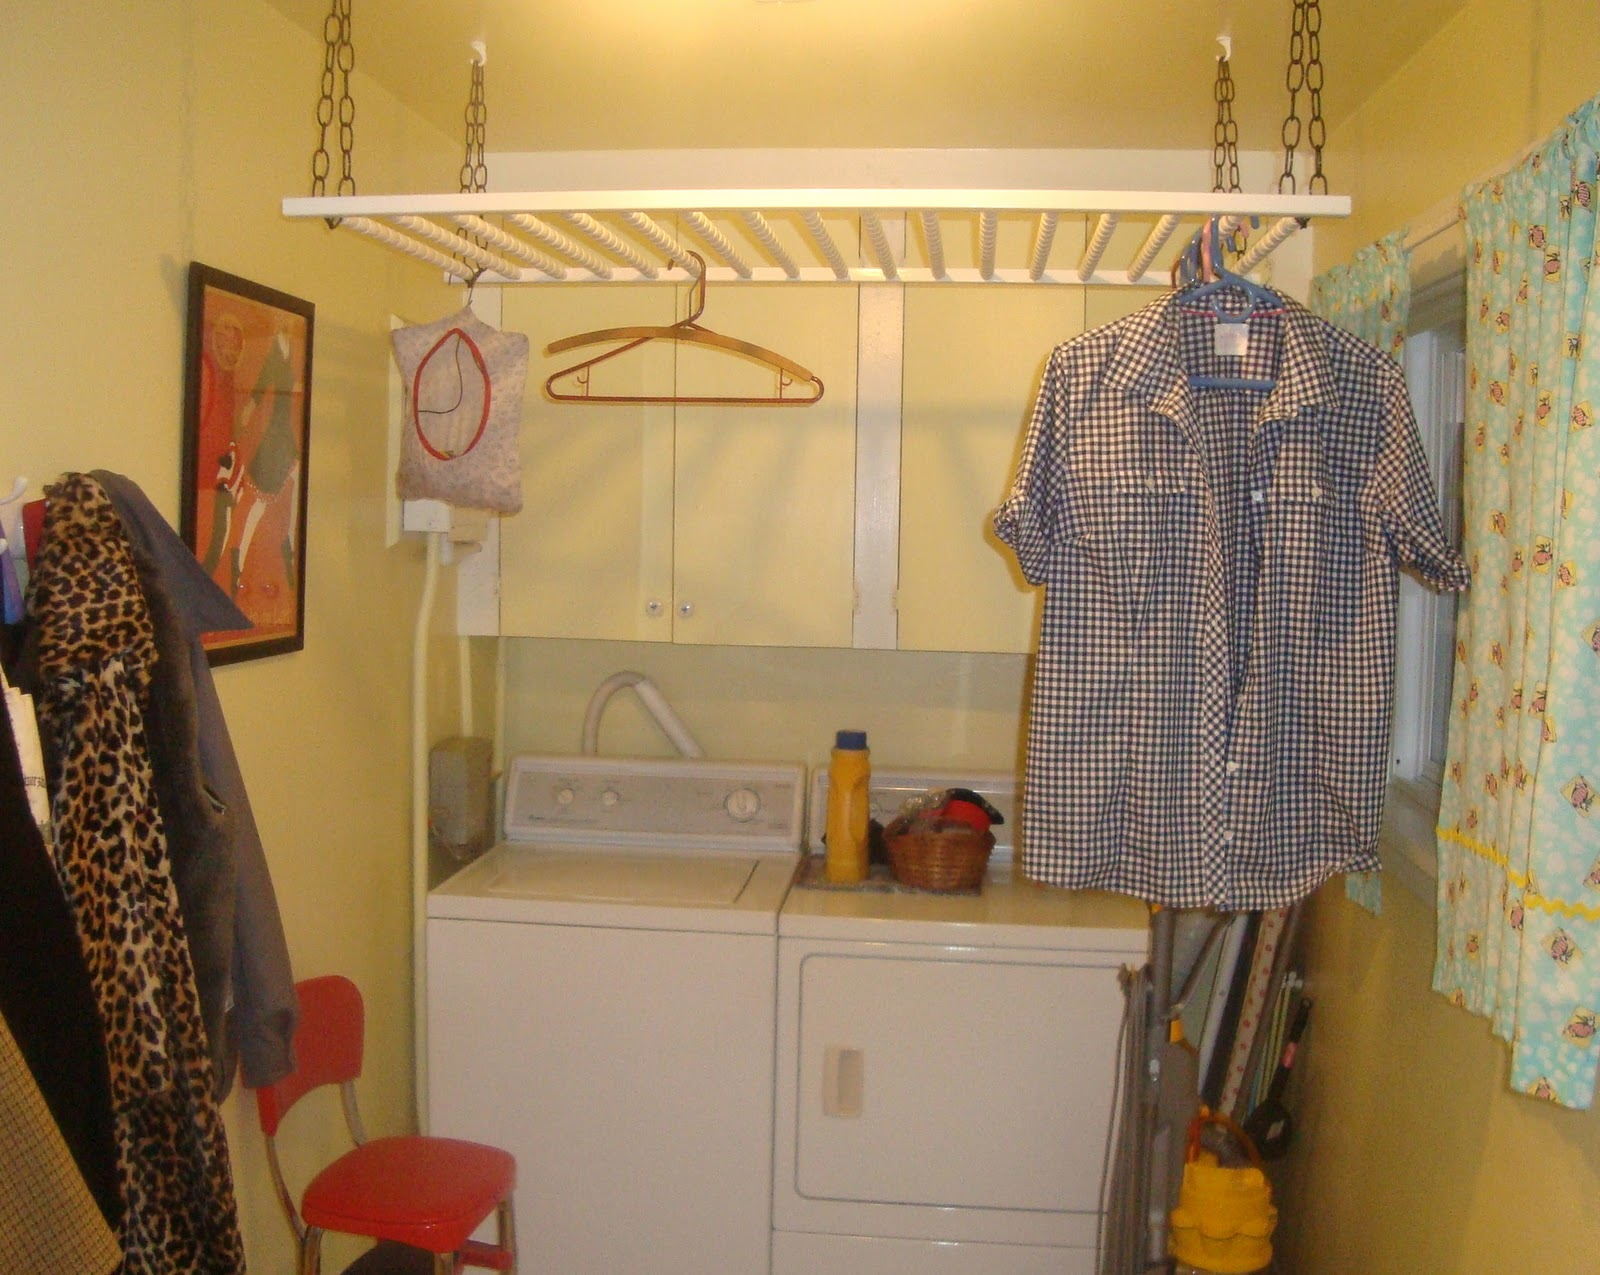 Clothes drying racks Repurposed and Basements come